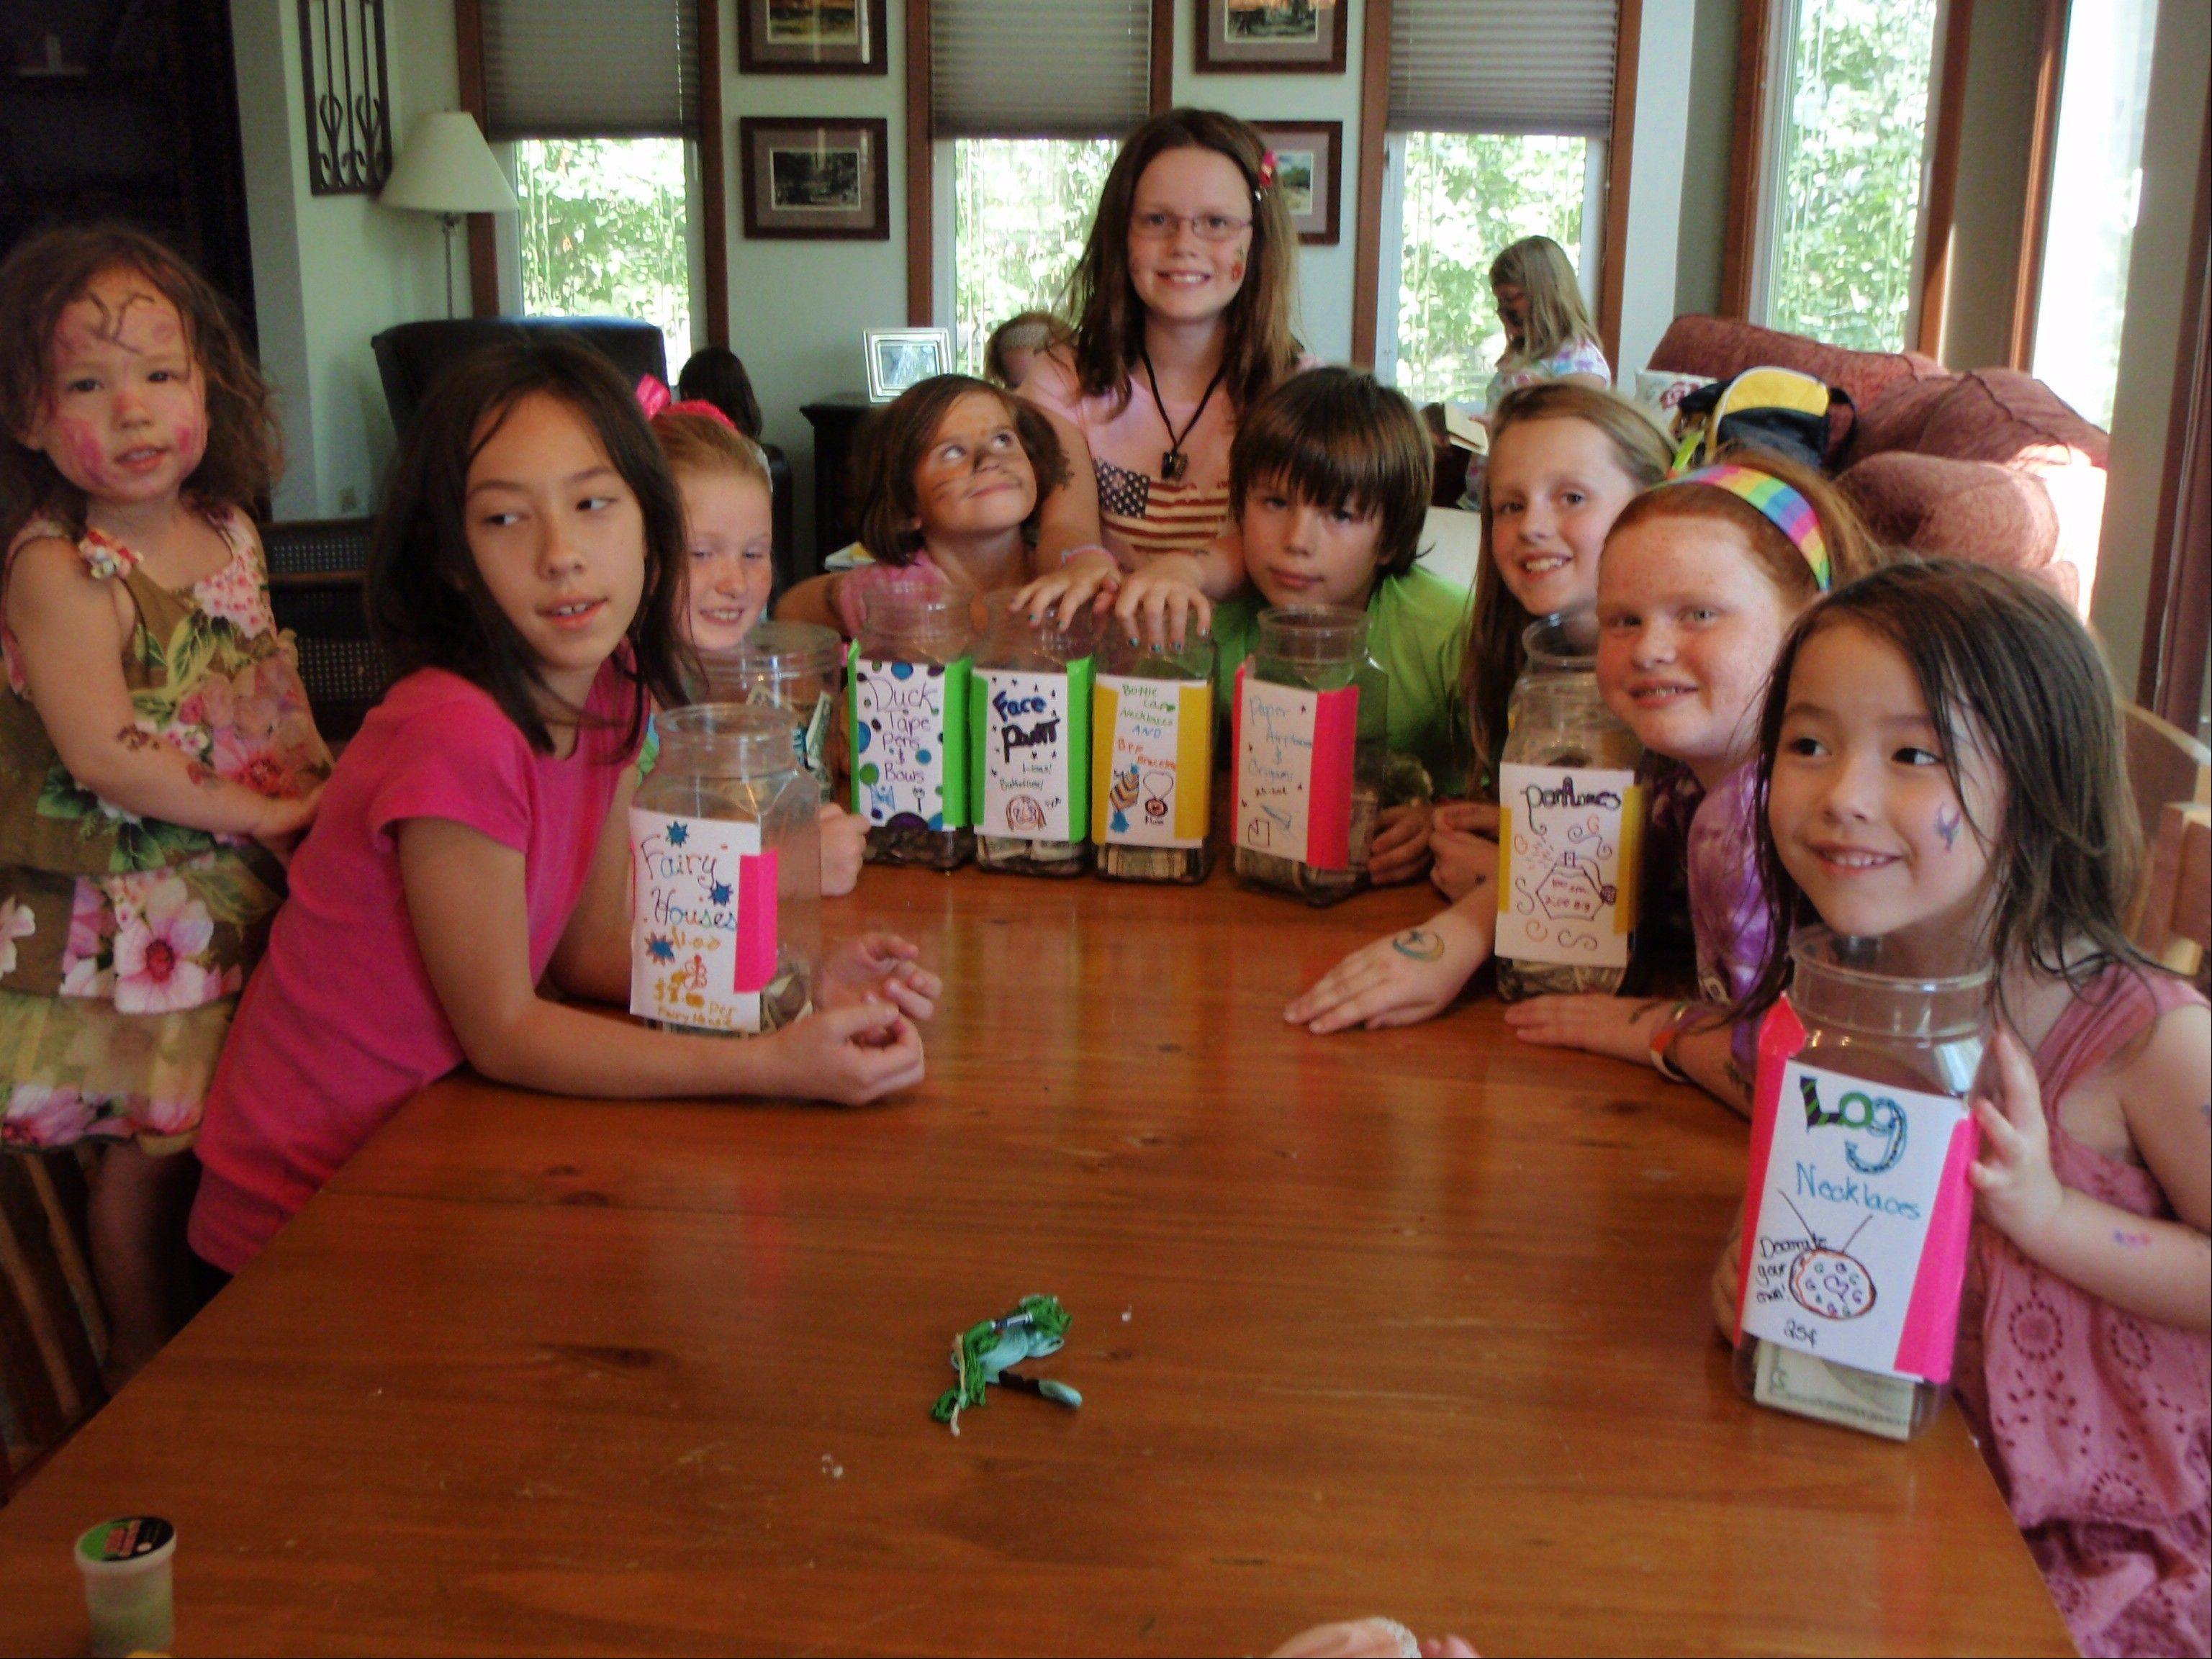 Kids raise funds for Lombard heart patient